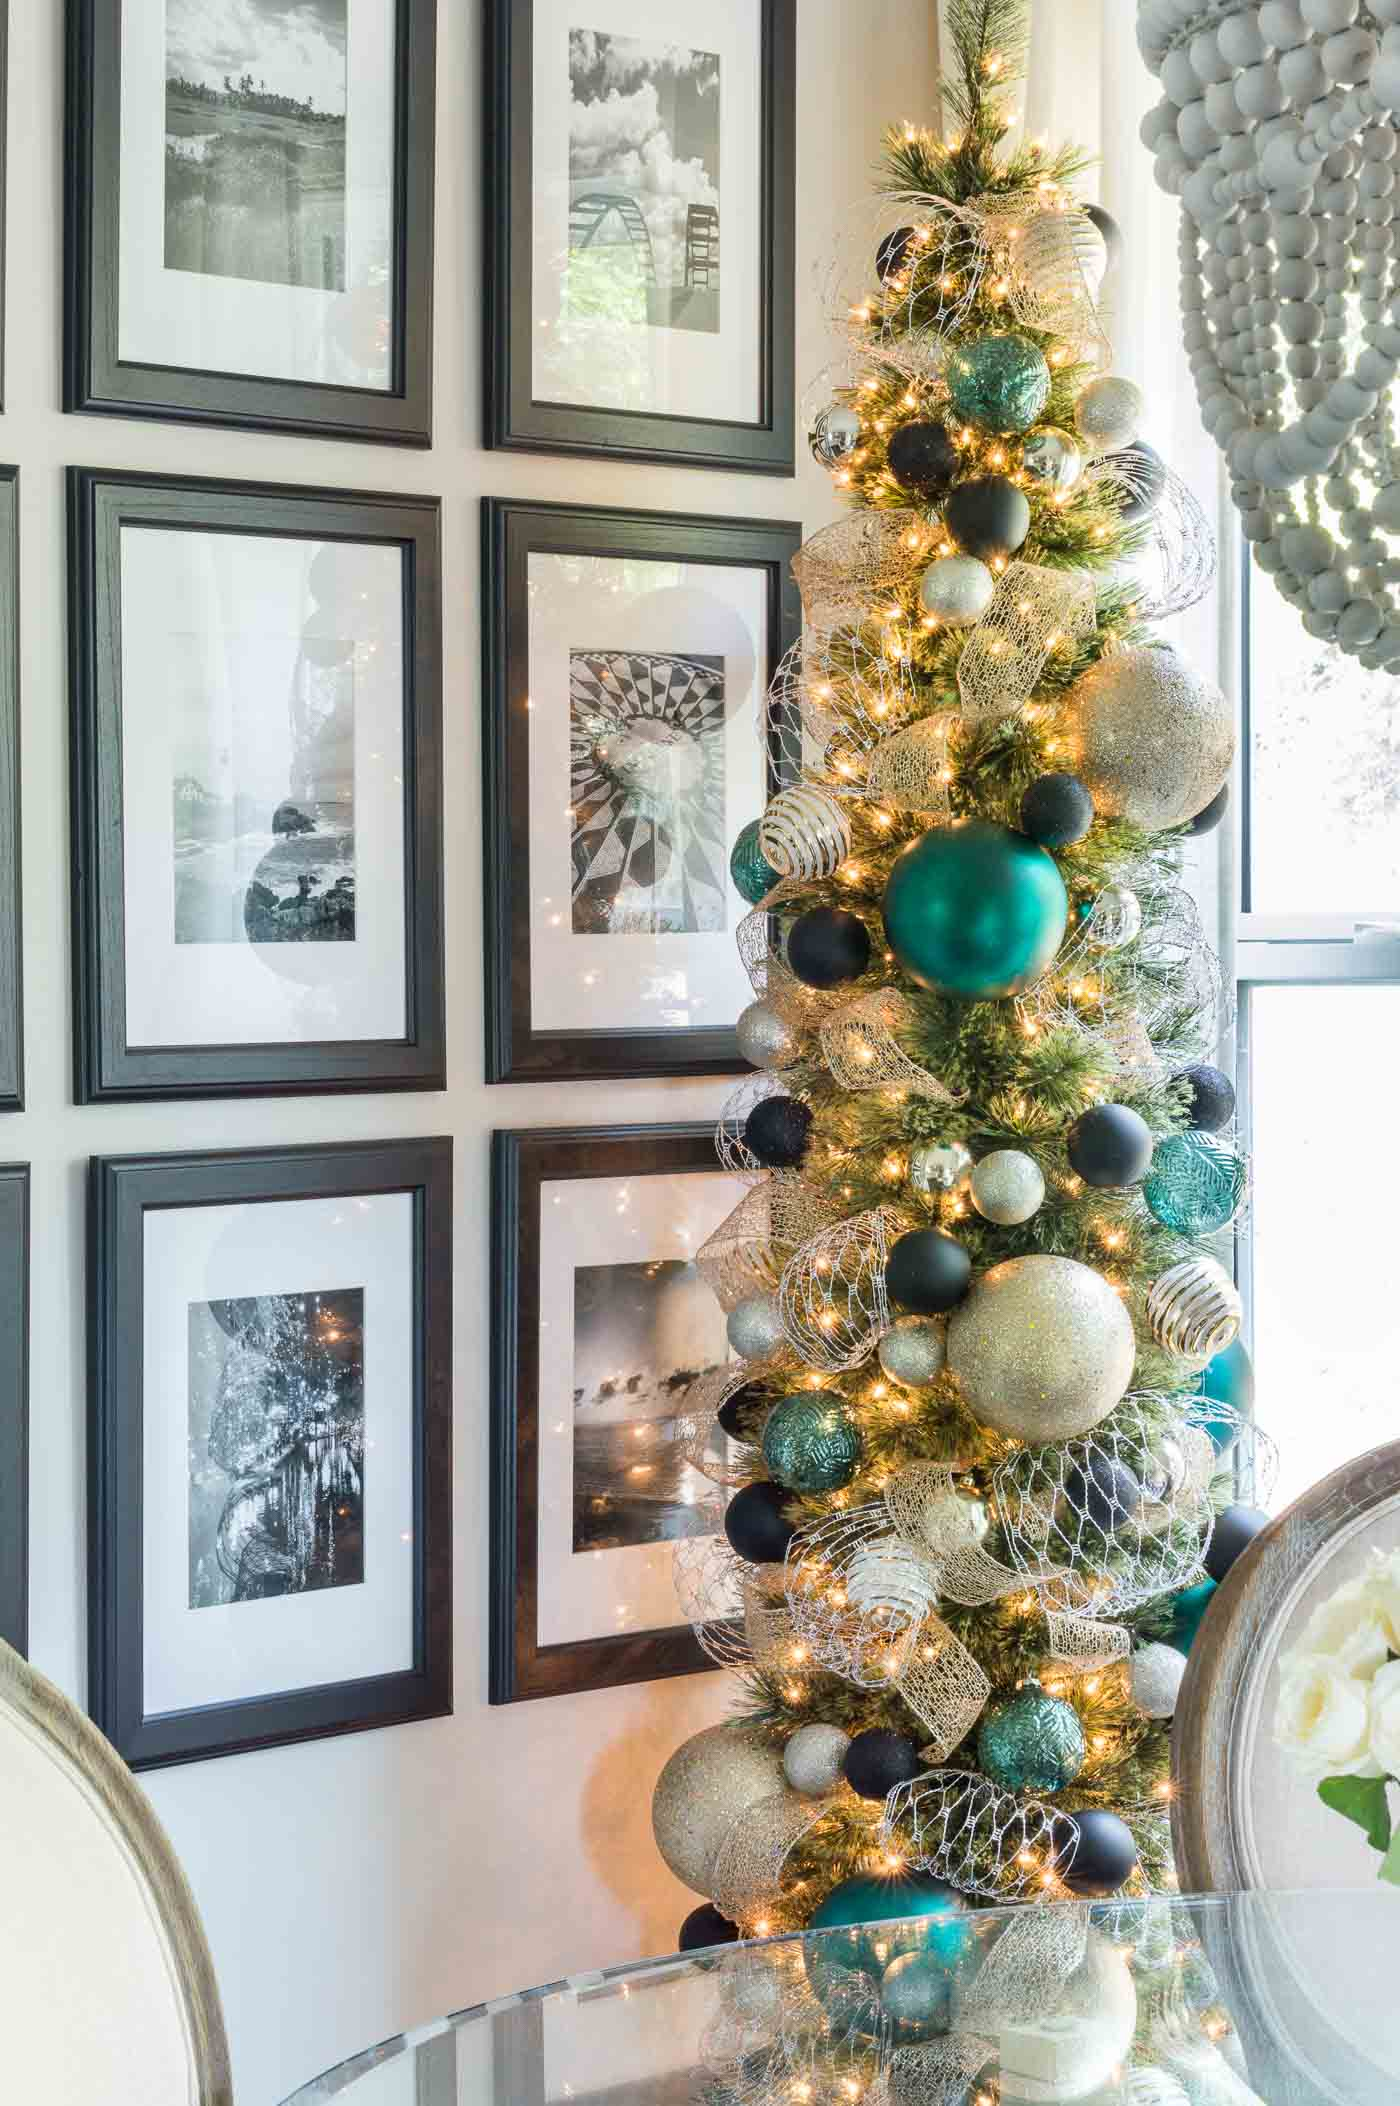 Three Original Christmas Tree Themes And New Color Schemes